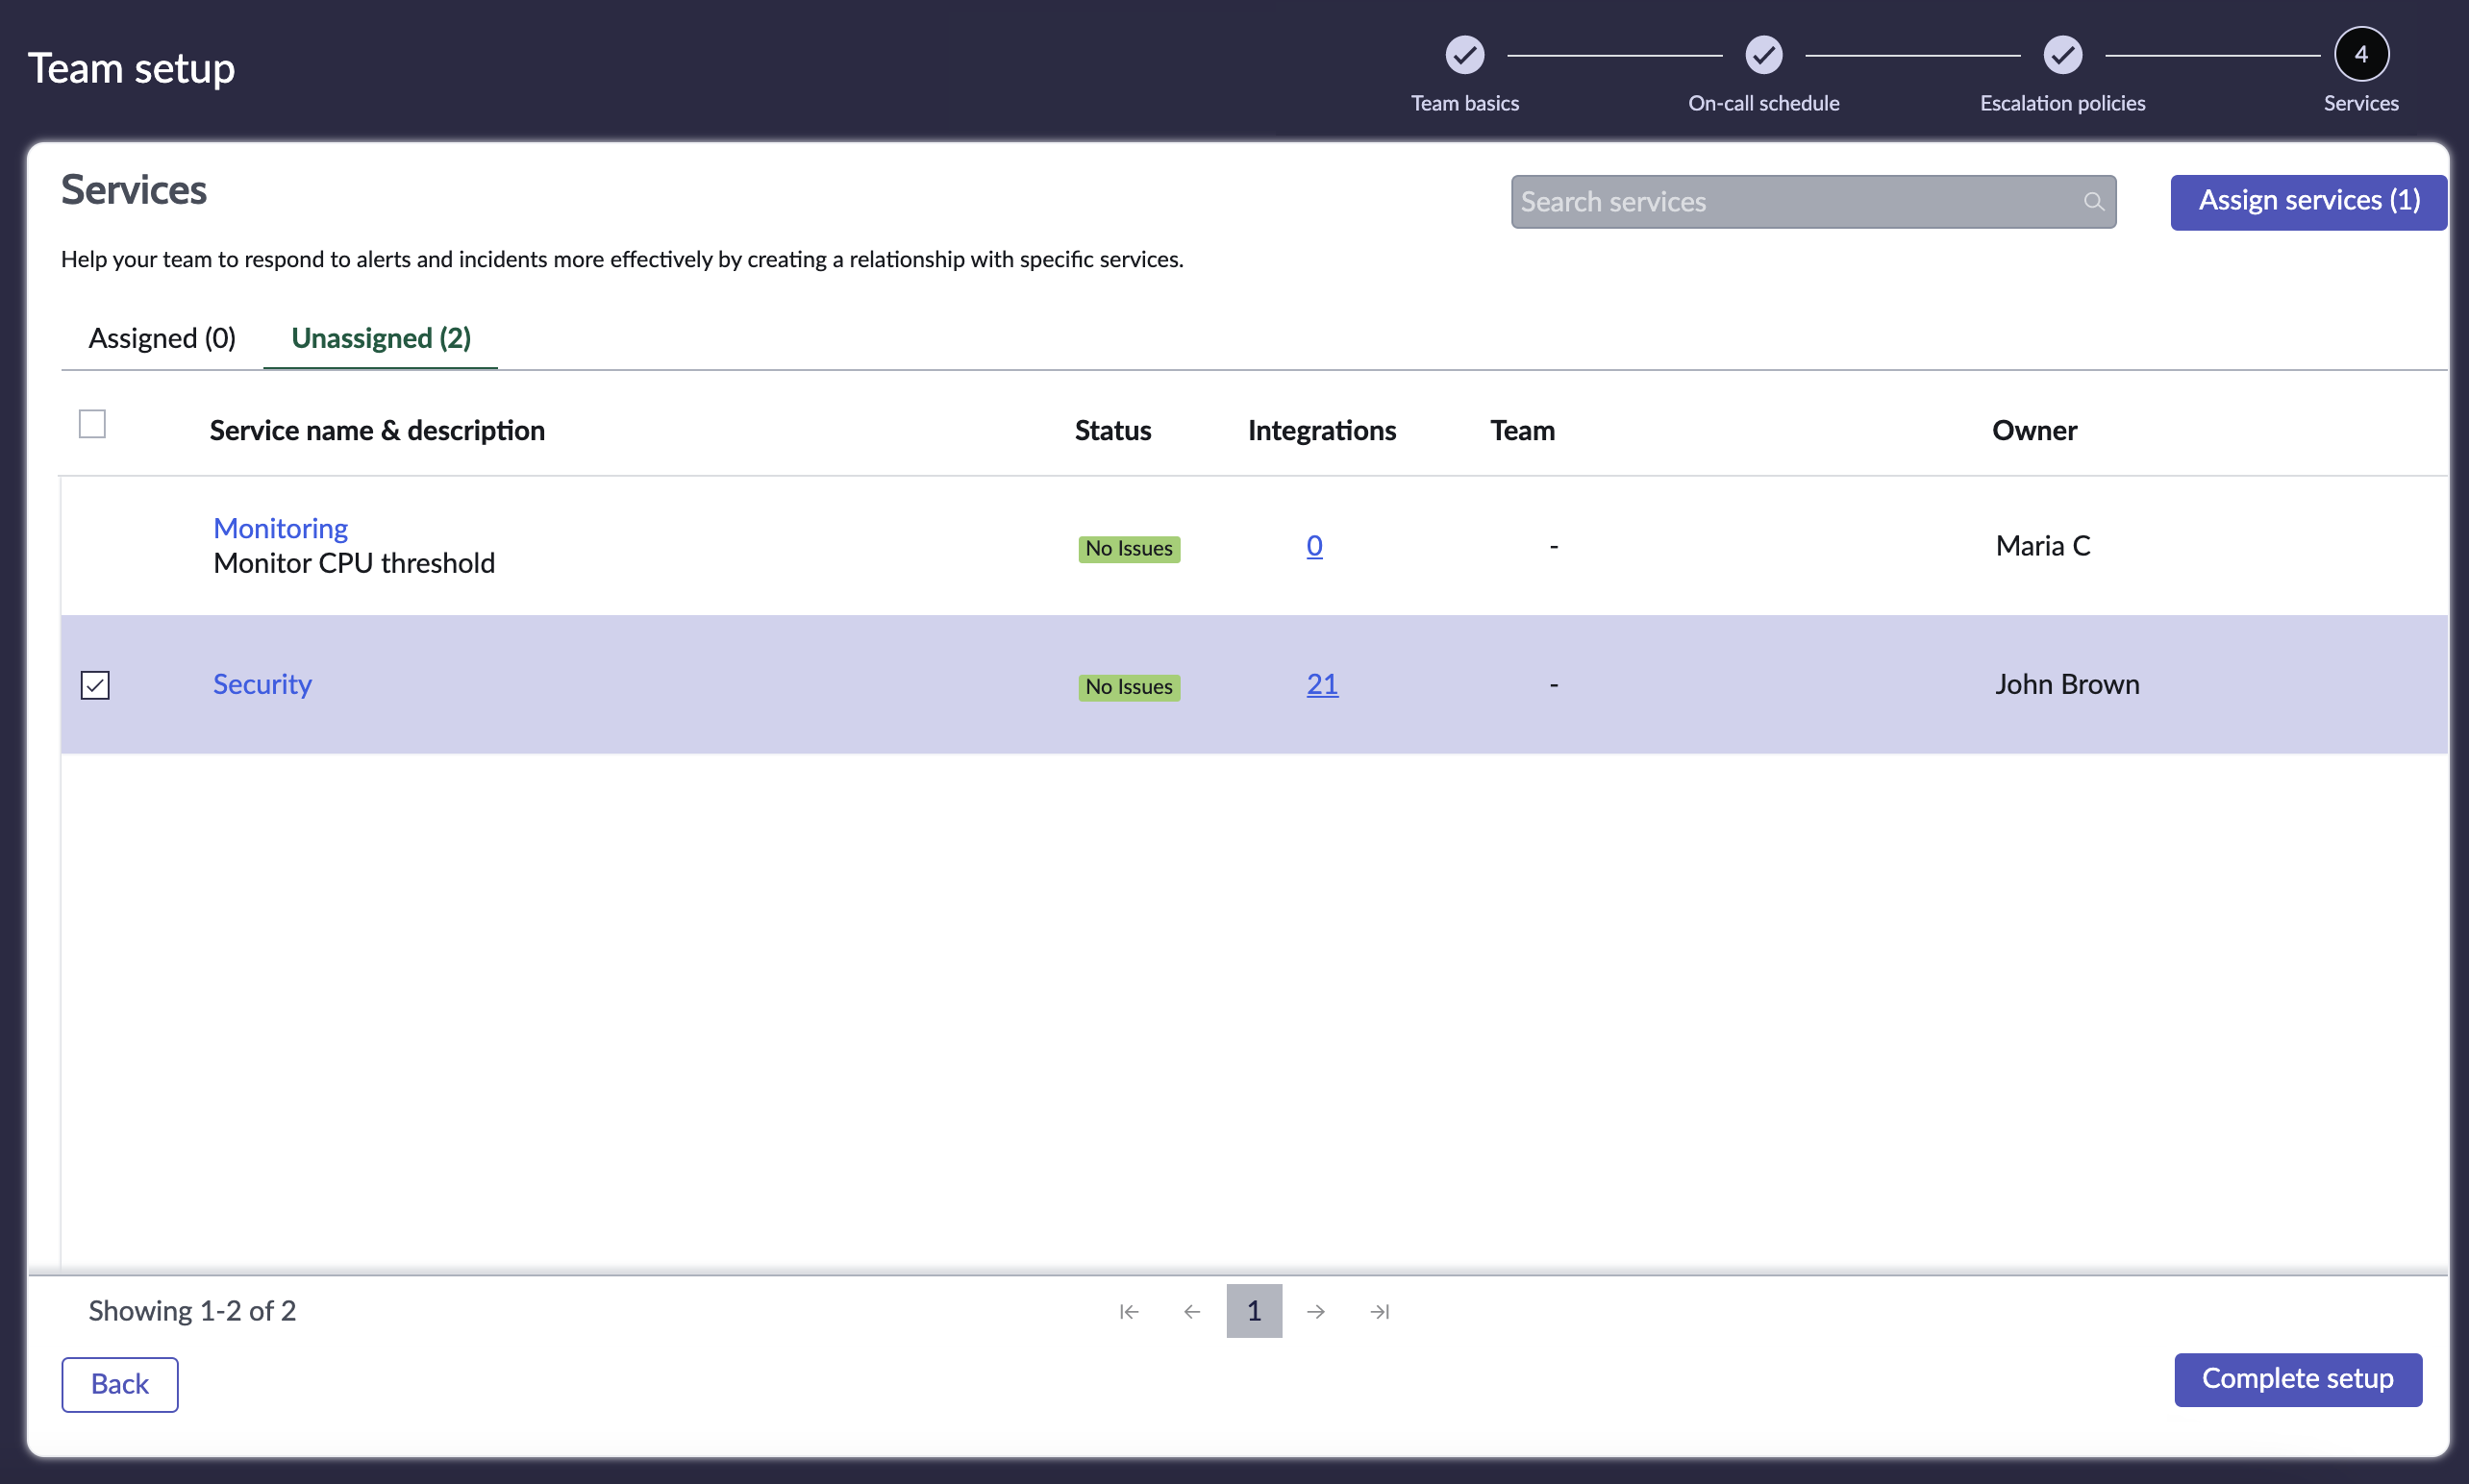 Select the services that you want to assign to your team.